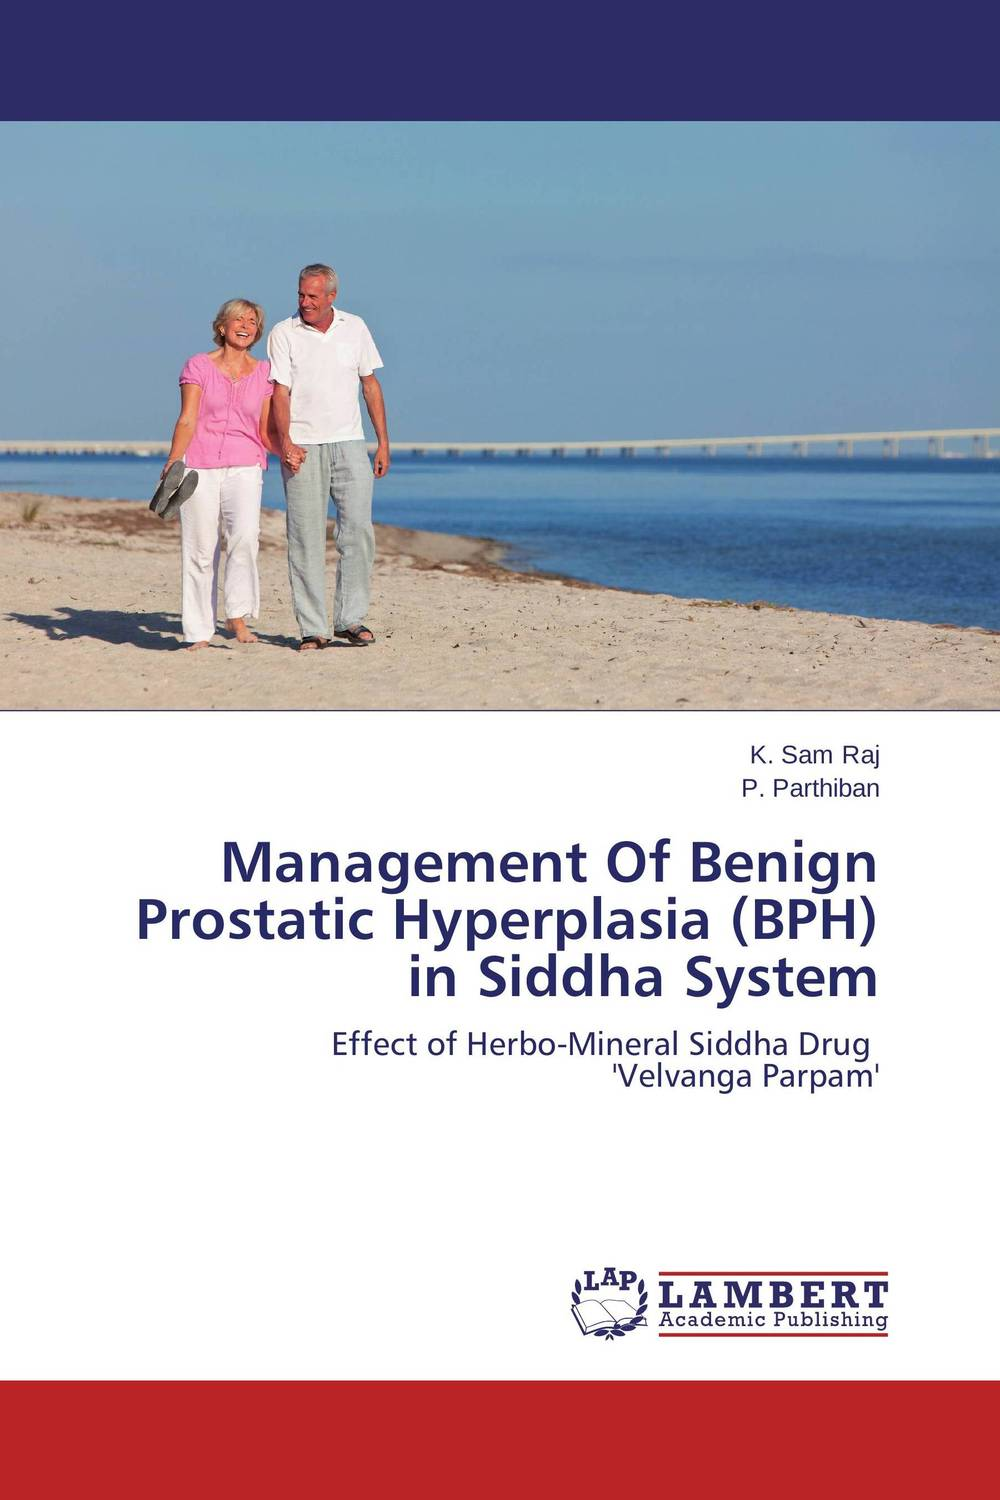 Management Of Benign Prostatic Hyperplasia (BPH) in Siddha System benign enlargement of prostate gland bep in ayurveda